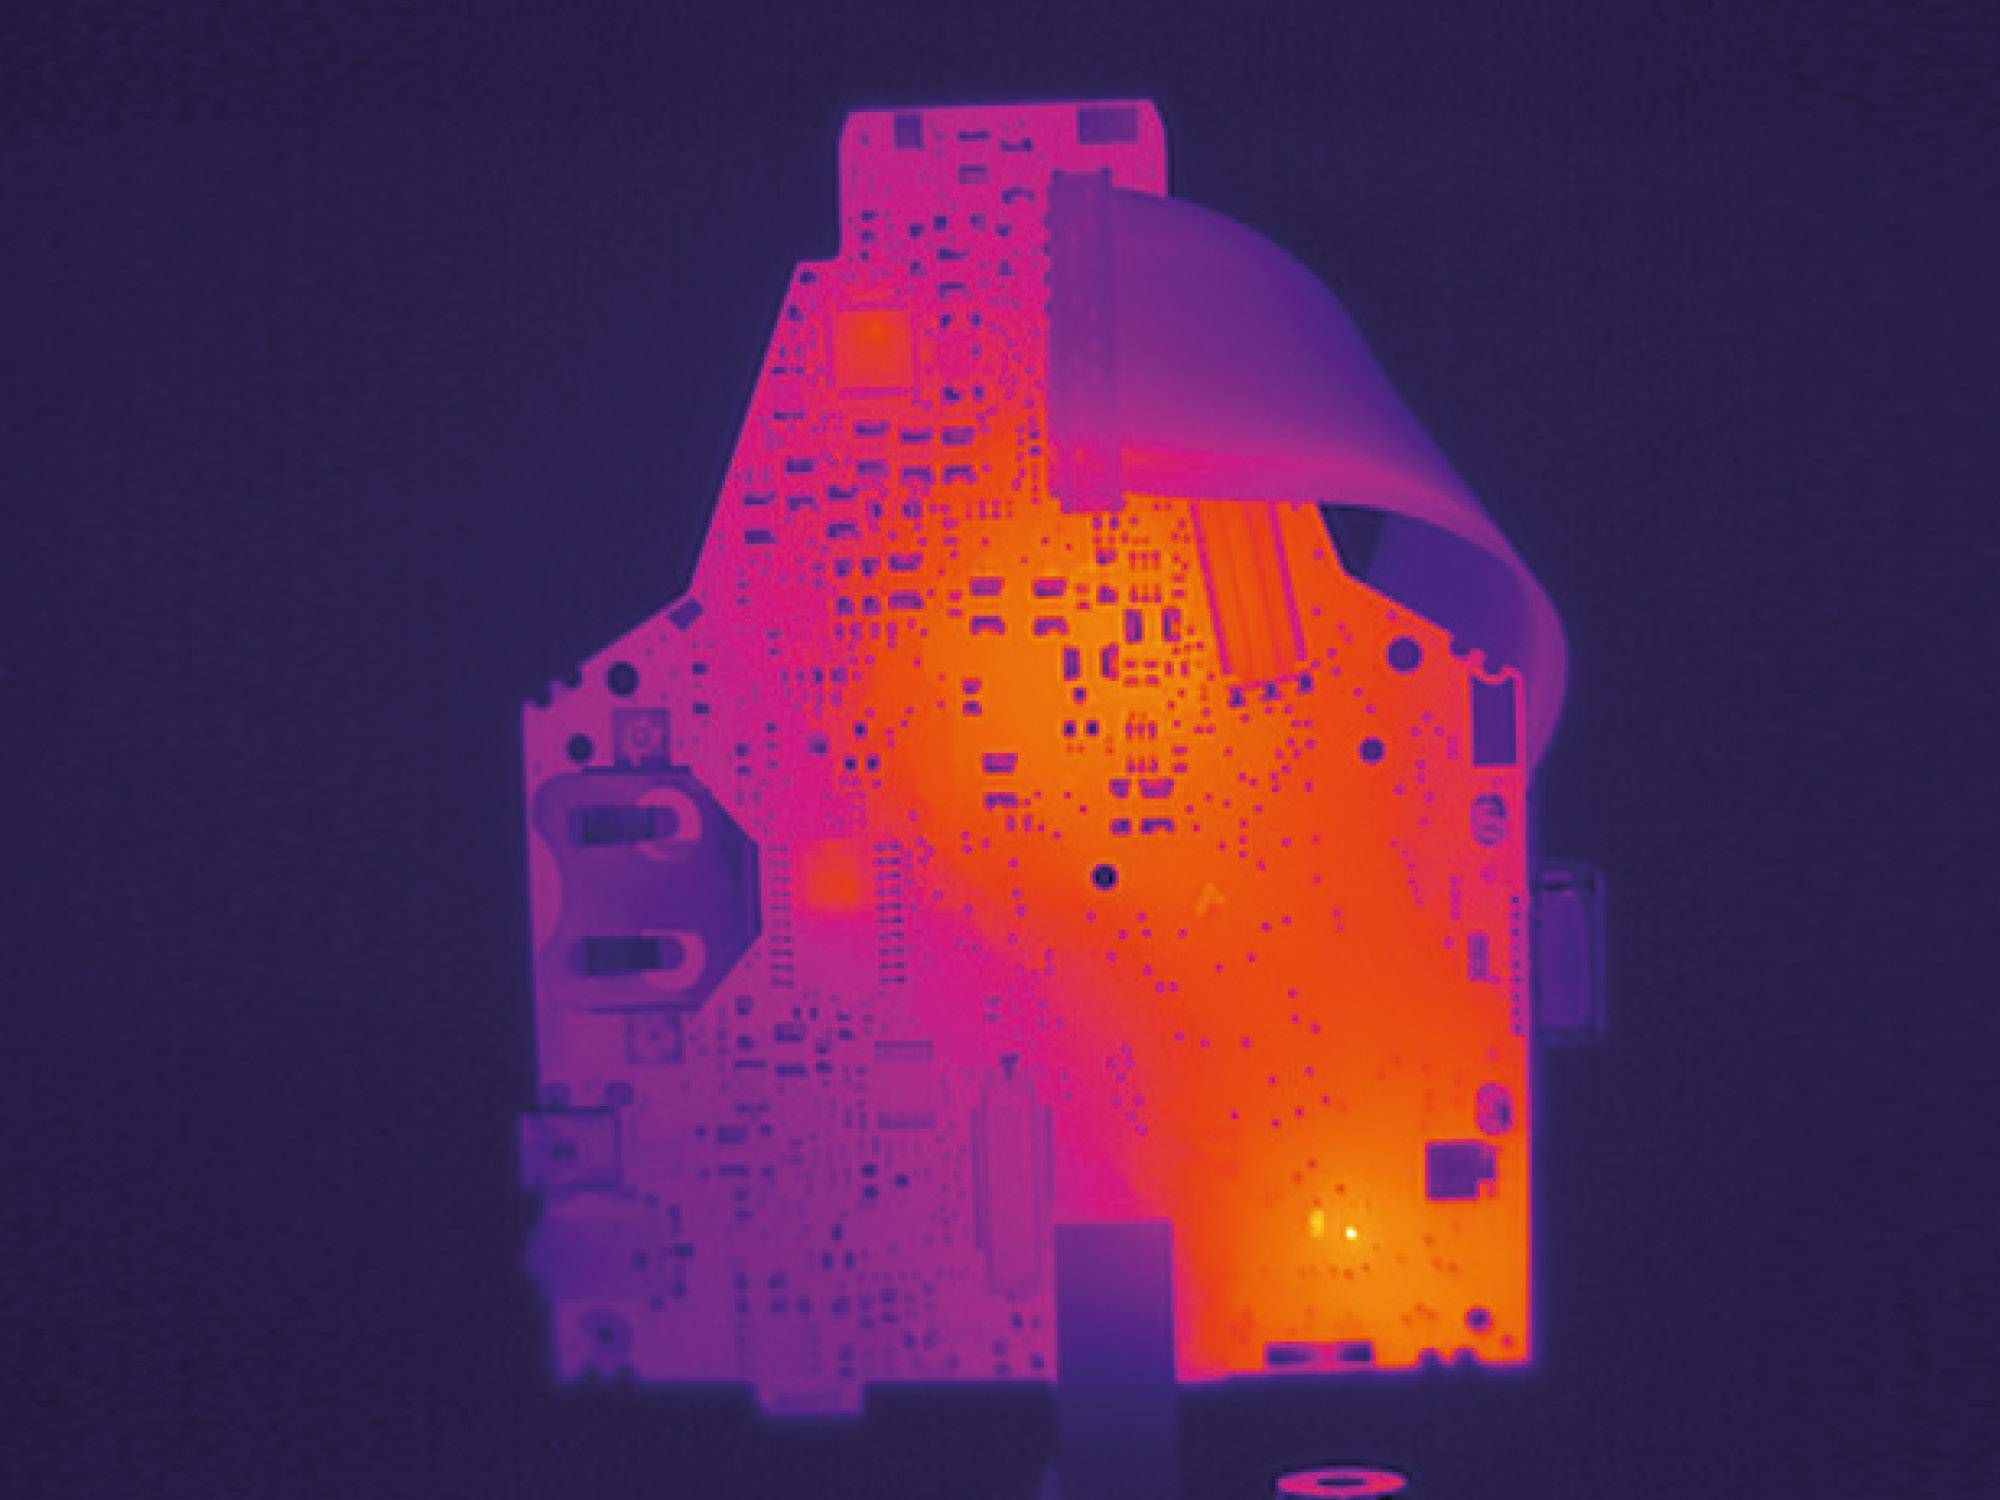 Thermal image of a circuit board